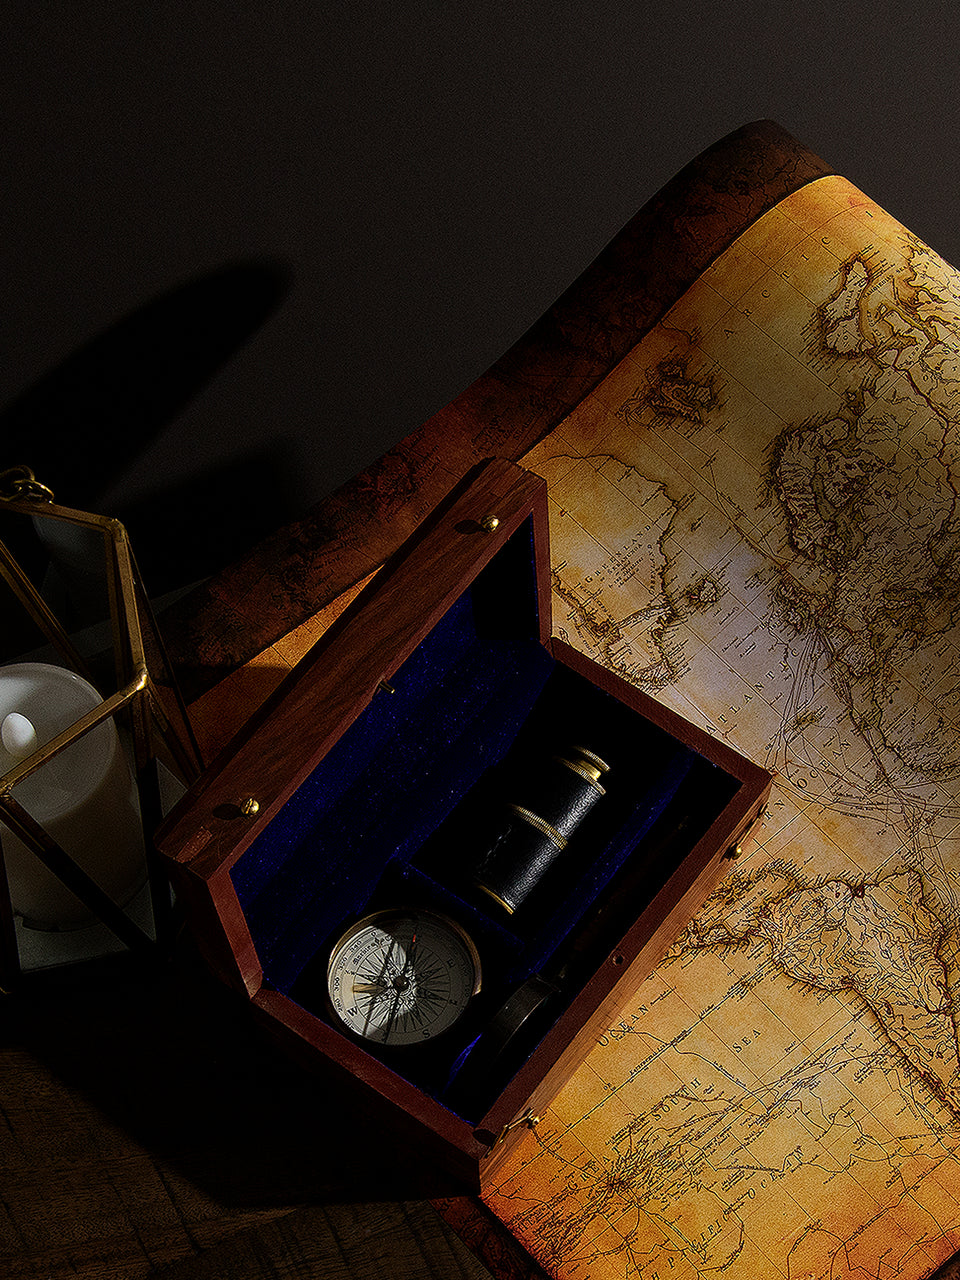 Wooden Box with Antique Telescope, Compass, and Magnifying Glass